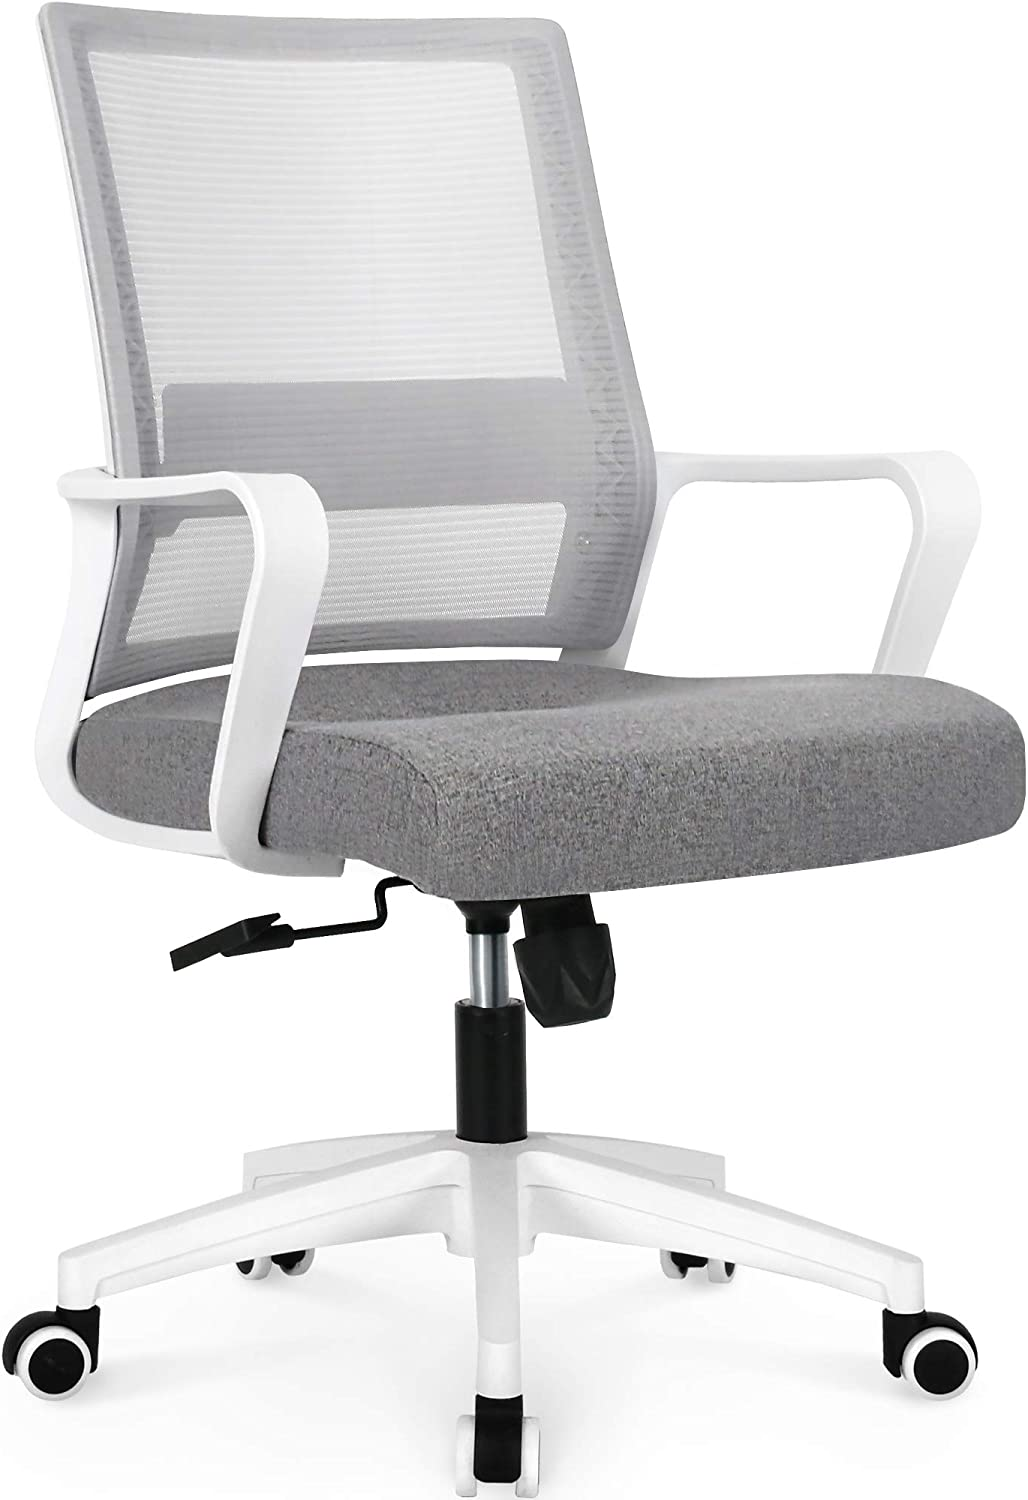 NEO CHAIR Office Chair Ergonomic Desk Chair Mesh Computer Chair Lumbar Support Modern Executive Adjustable Rolling Swivel Chair Comfortable Mid Black Task Home Office Chair, Grey